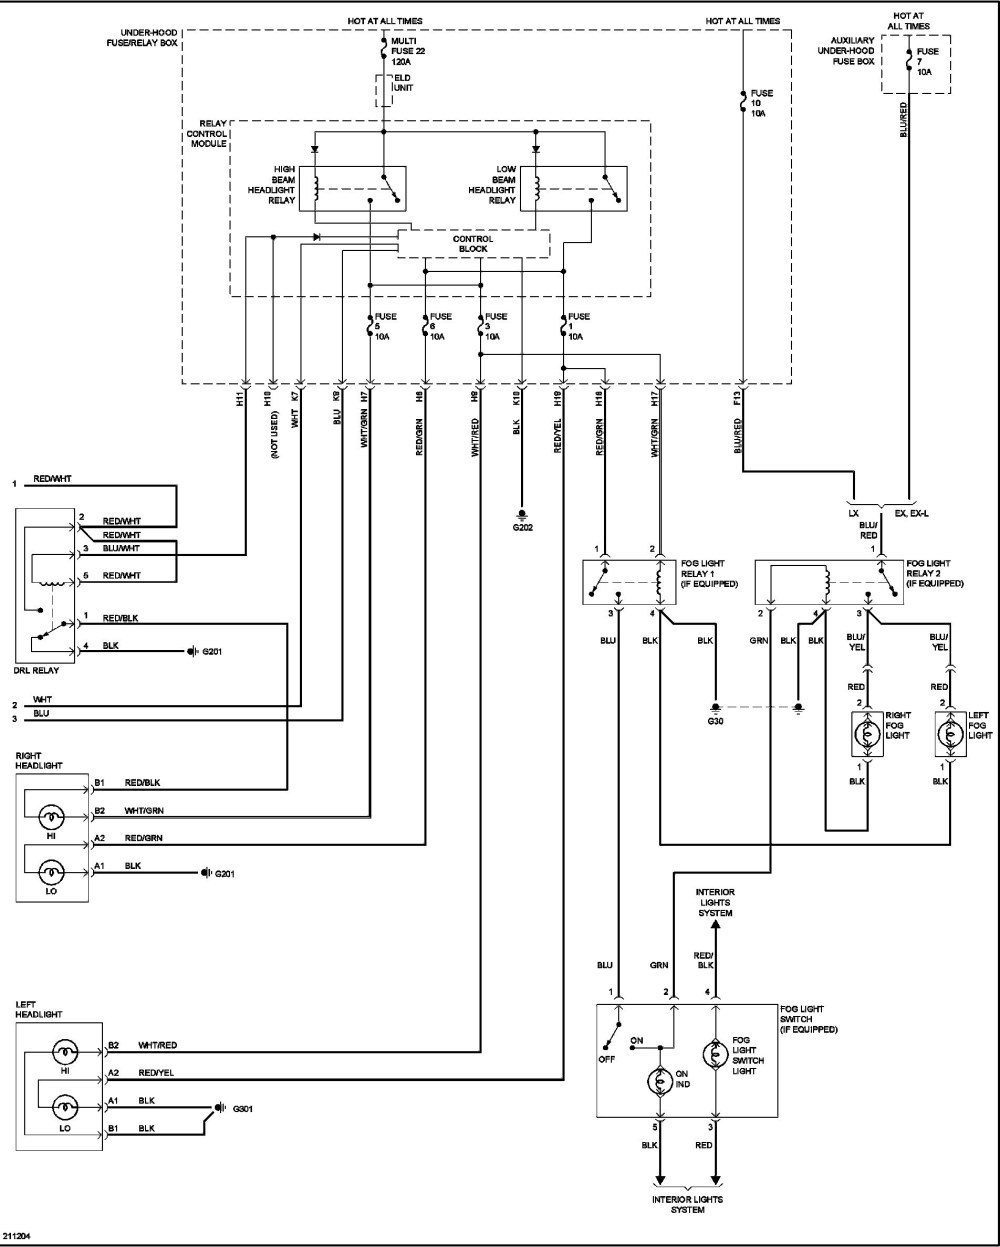 medium resolution of 2013 honda odyssey wiring diagrams my wiring diagram 2014 honda odyssey radio wiring diagram 2014 honda odyssey wiring diagram